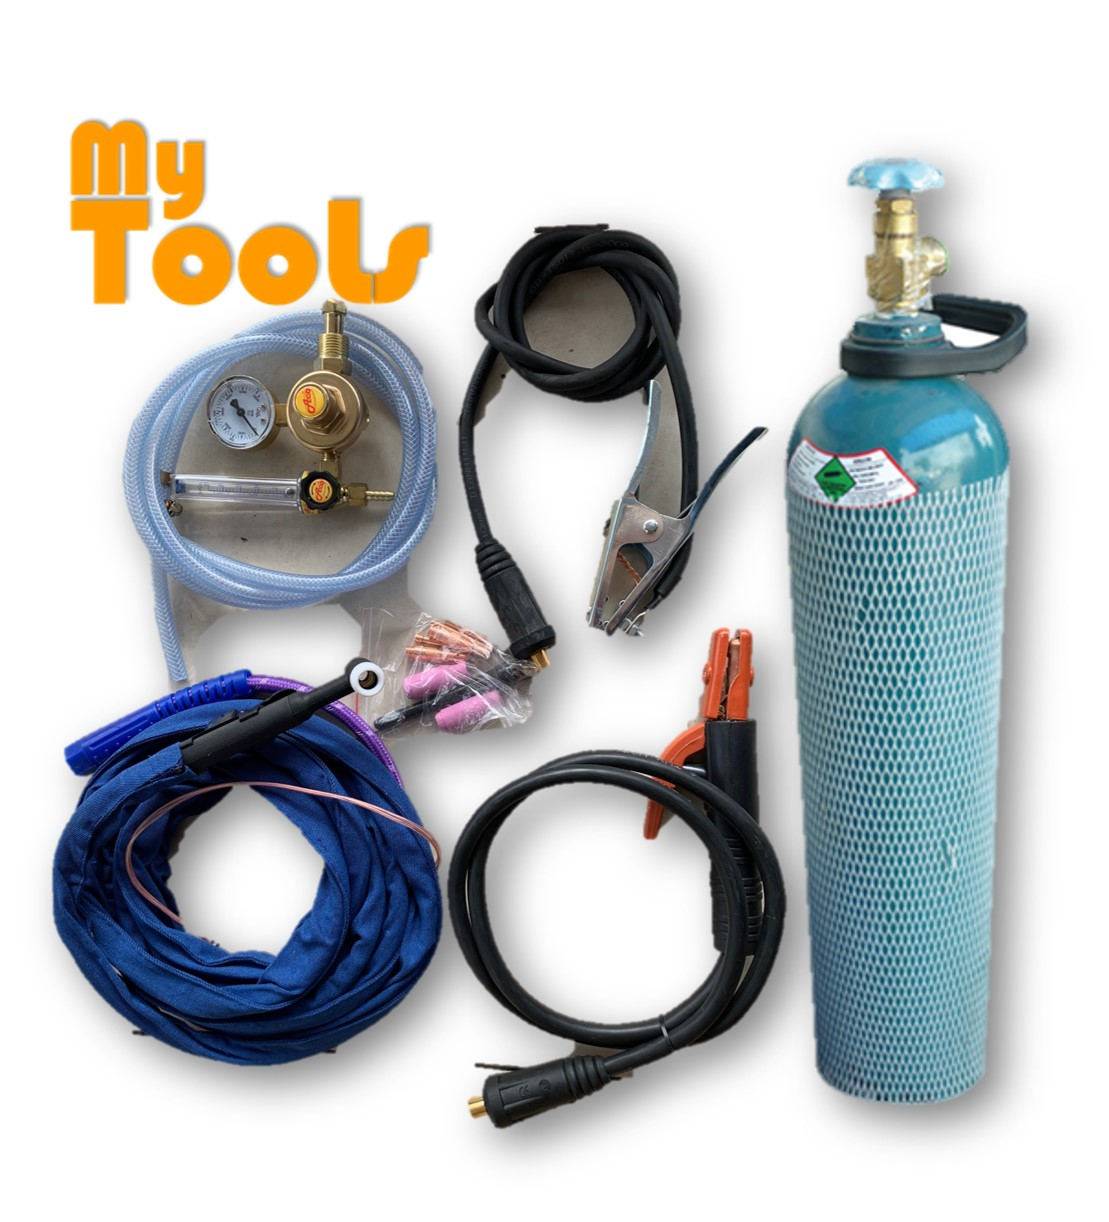 Mytools TIG 200 TIG & ARC Stainless Steels Welding Machine Inverter Complete With c/w Argon Gas Tank